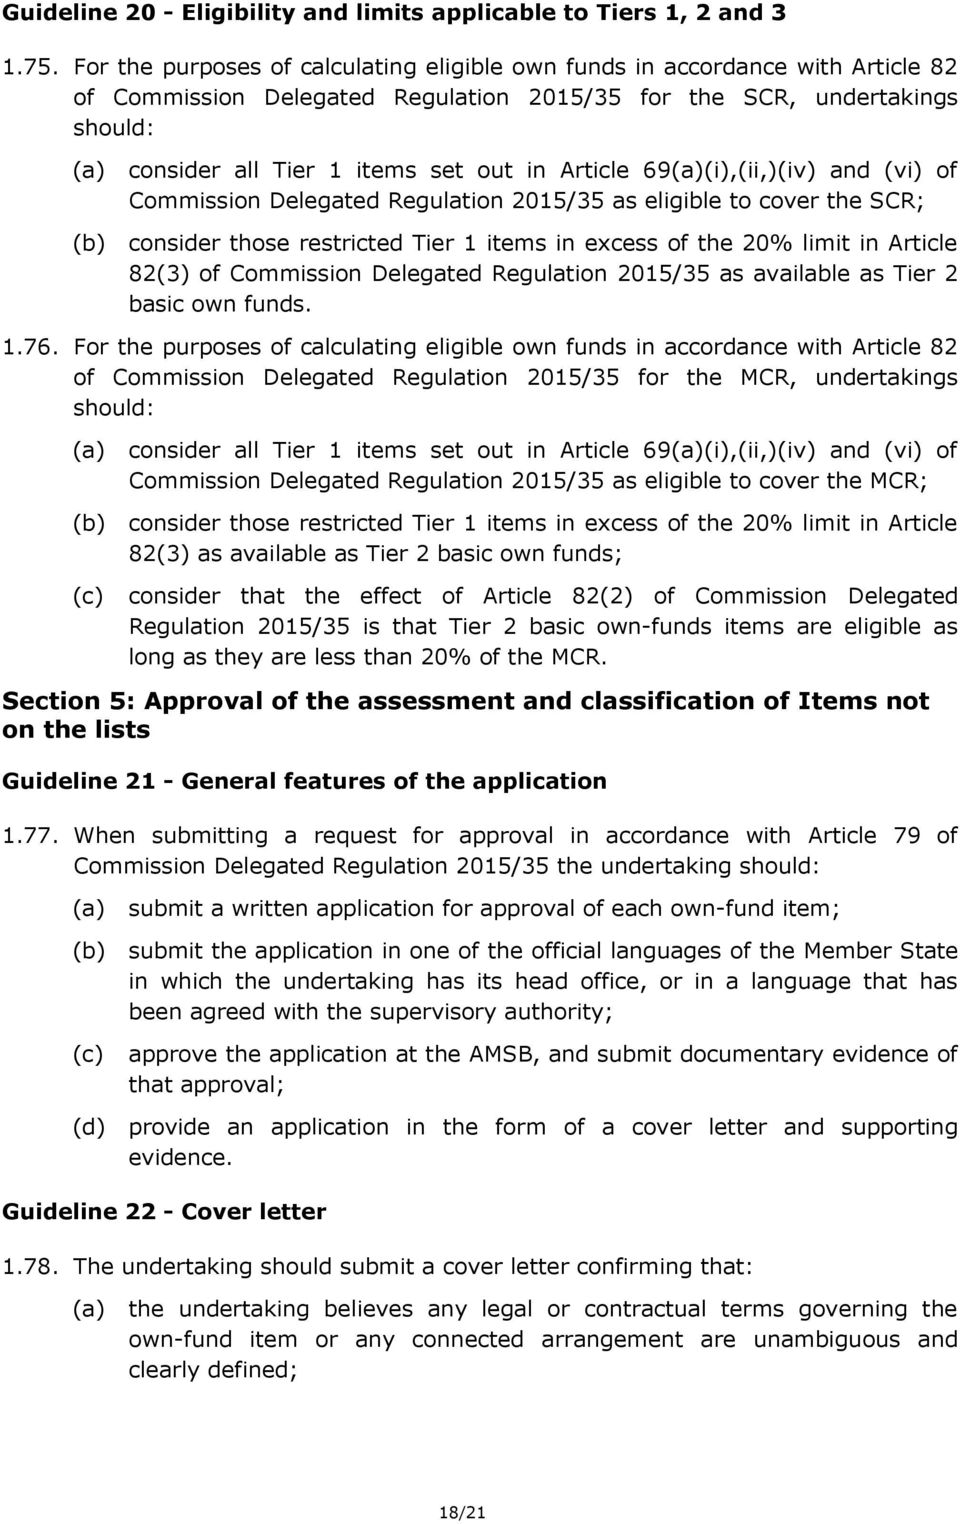 Article 69(i),(ii,)(iv) and (vi) of Commission Delegated Regulation 2015/35 as eligible to cover the SCR; consider those restricted Tier 1 items in excess of the 20% limit in Article 82(3) of